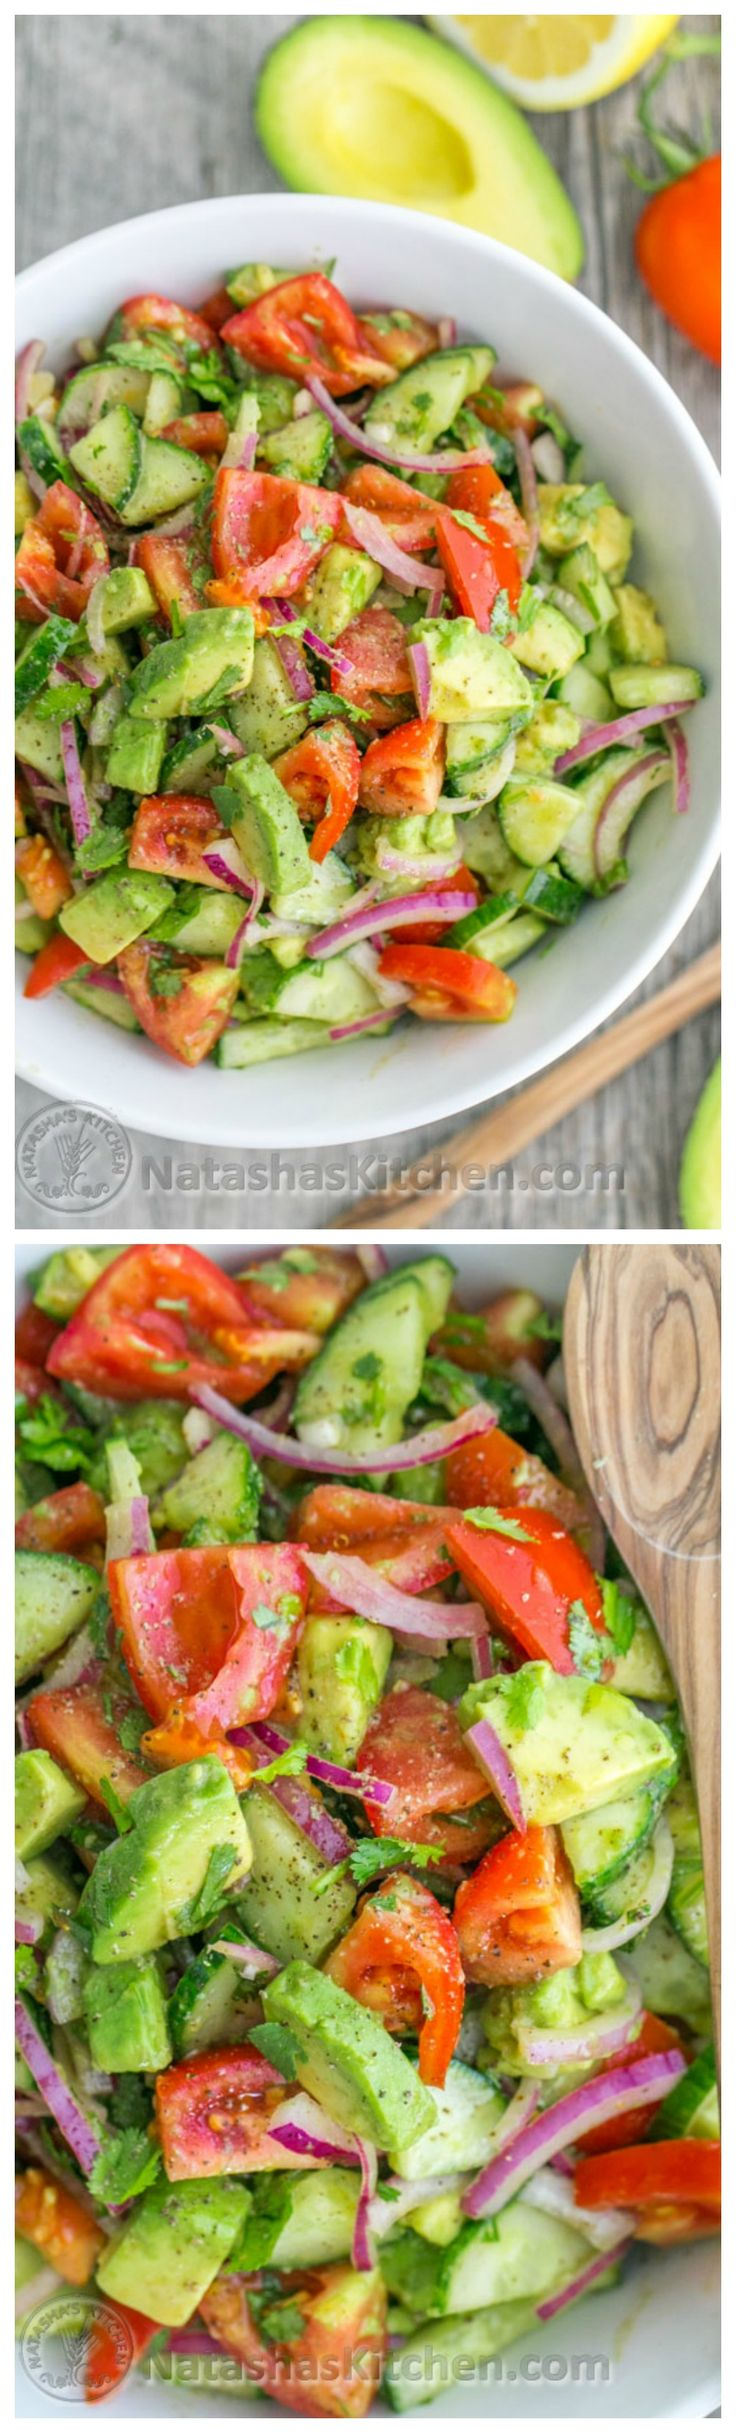 This Cucumber Tomato Avocado Salad